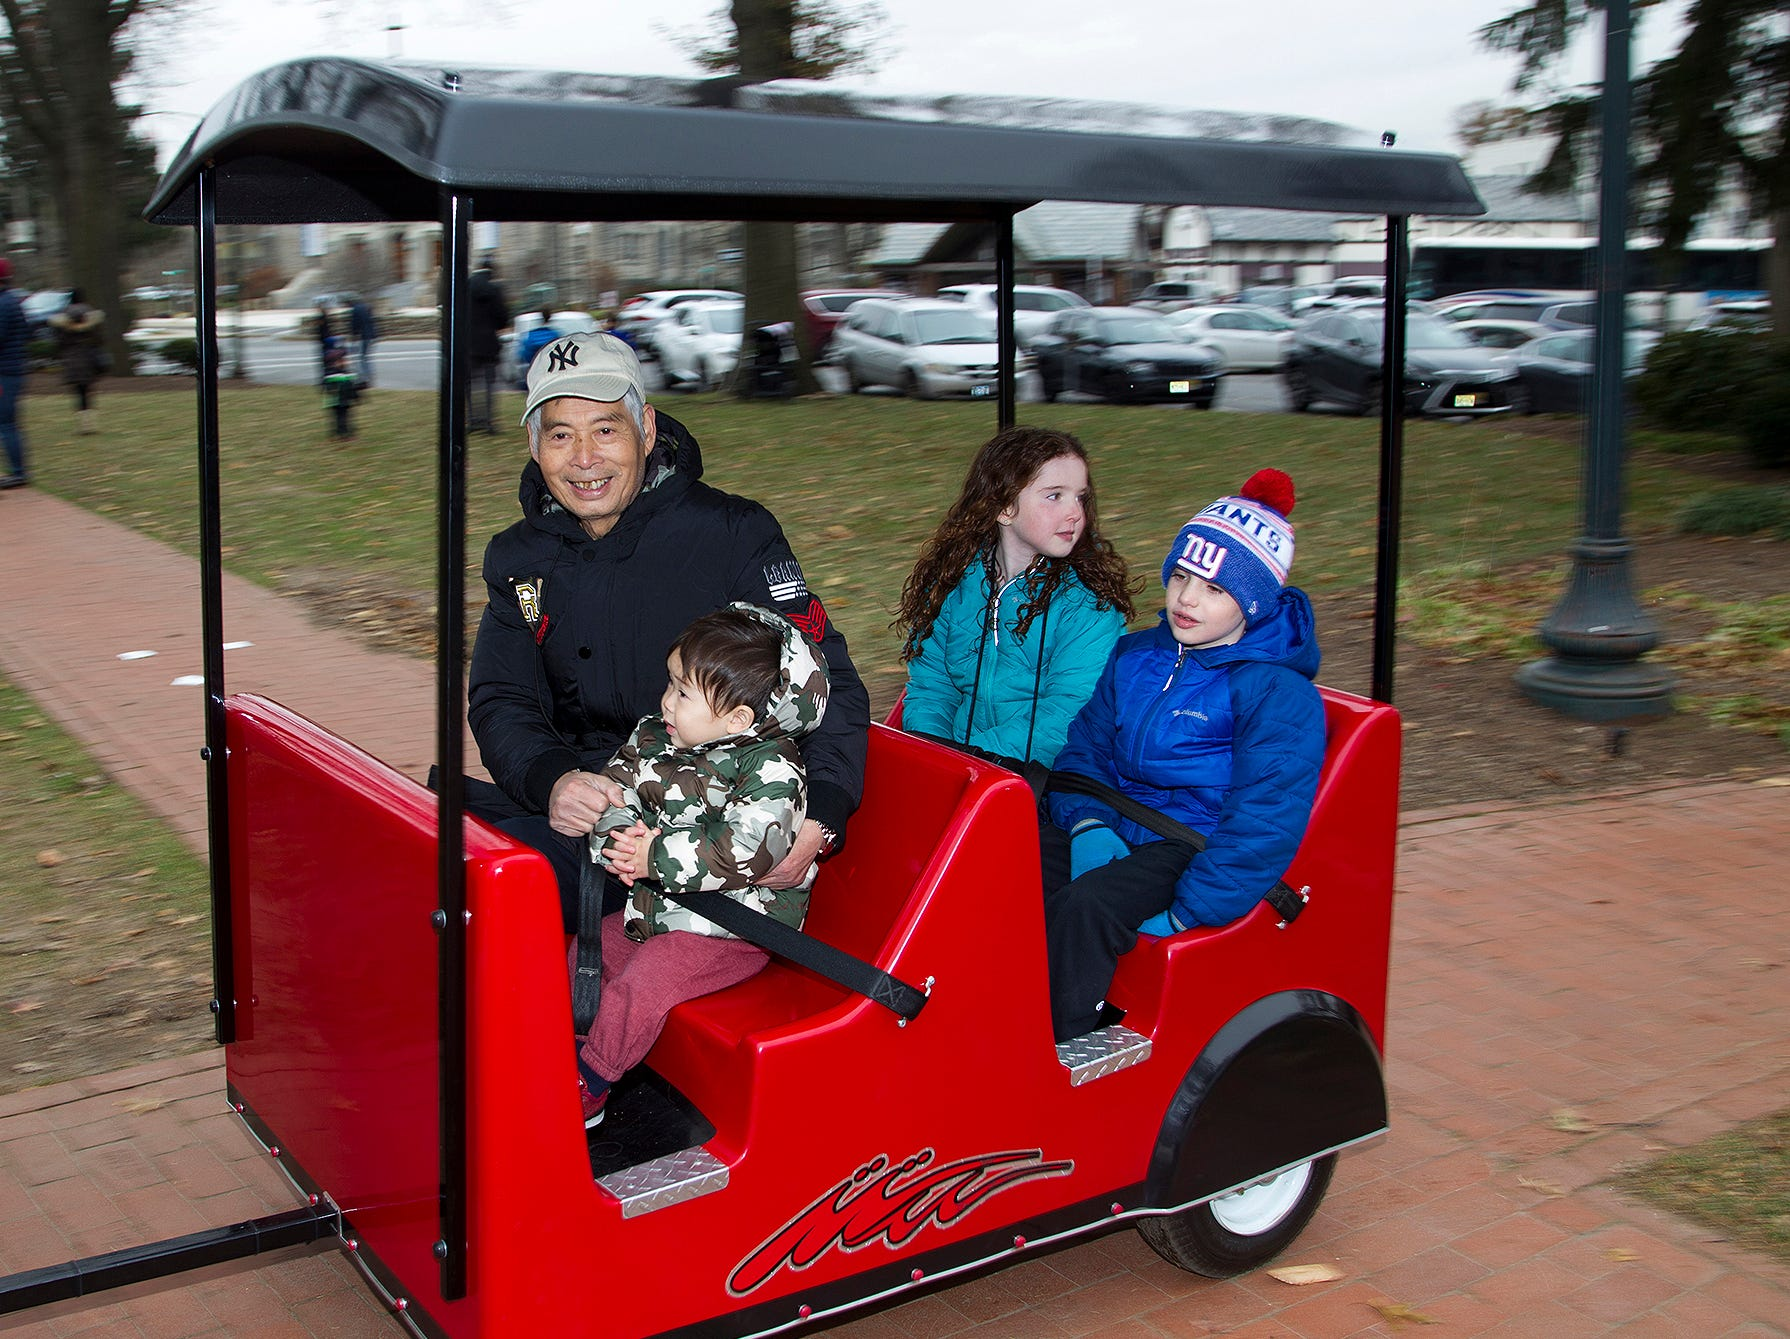 Train Ride. The Ridgewood Guild sponsors Winter Fest at Van Neste Park in Ridgewood. 11/24/2018